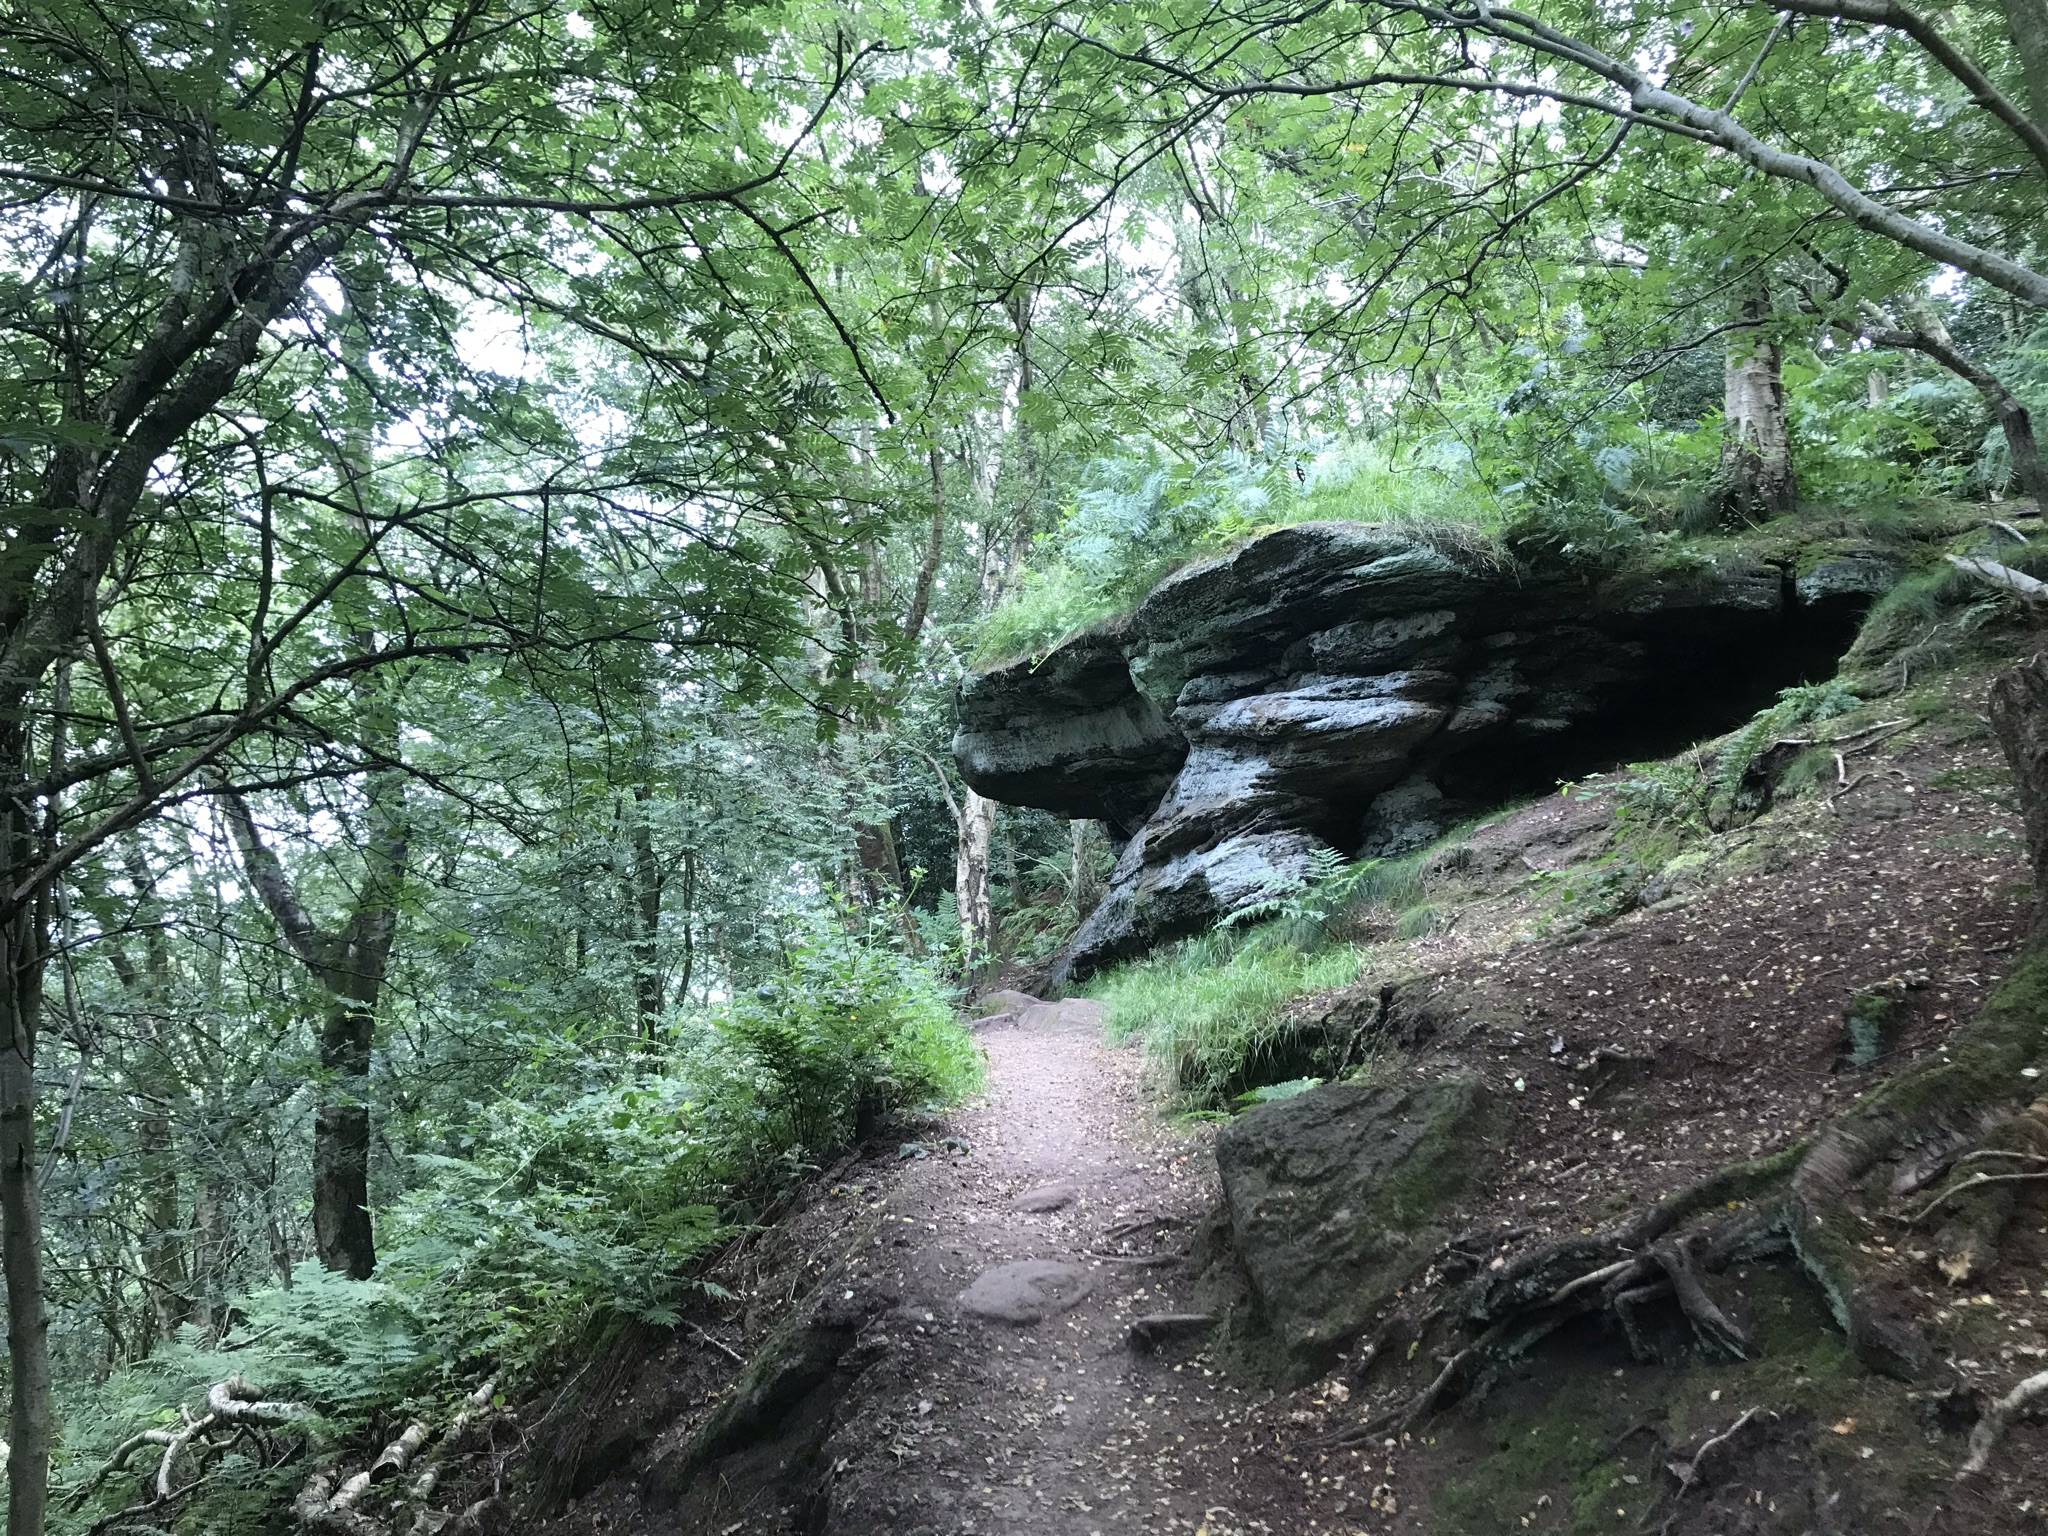 An outcrop of sandstone overhangs the path through trees on a steep hill